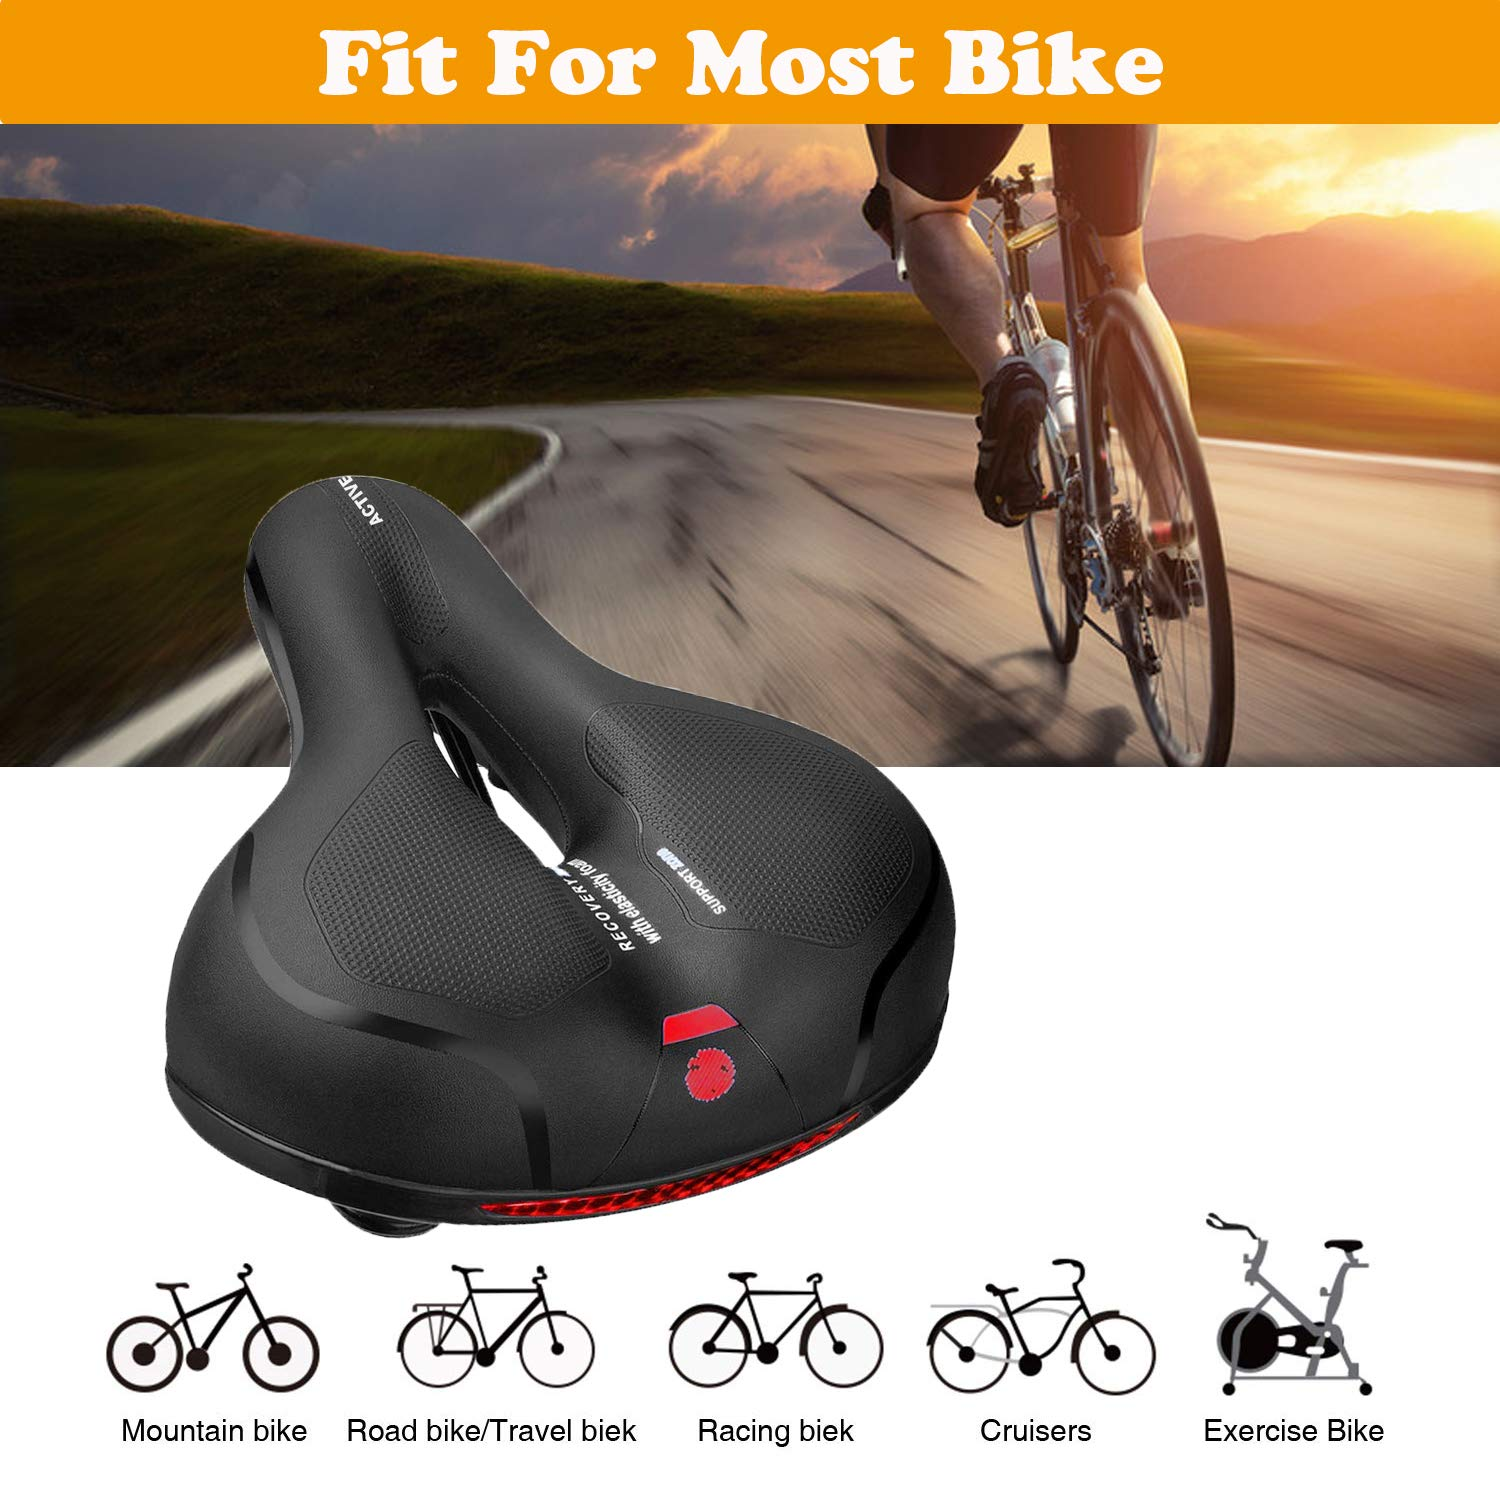 MSDADA Comfortable Bike Seat-Padded Soft Bike Saddle Memory Foam Wide Bike Cushion with Dual Shock Absorbing Rubber Balls Waterproof Universal Fit for Indoor/Outdoor Bikes with Reflective Strip by MSDADA (Image #5)